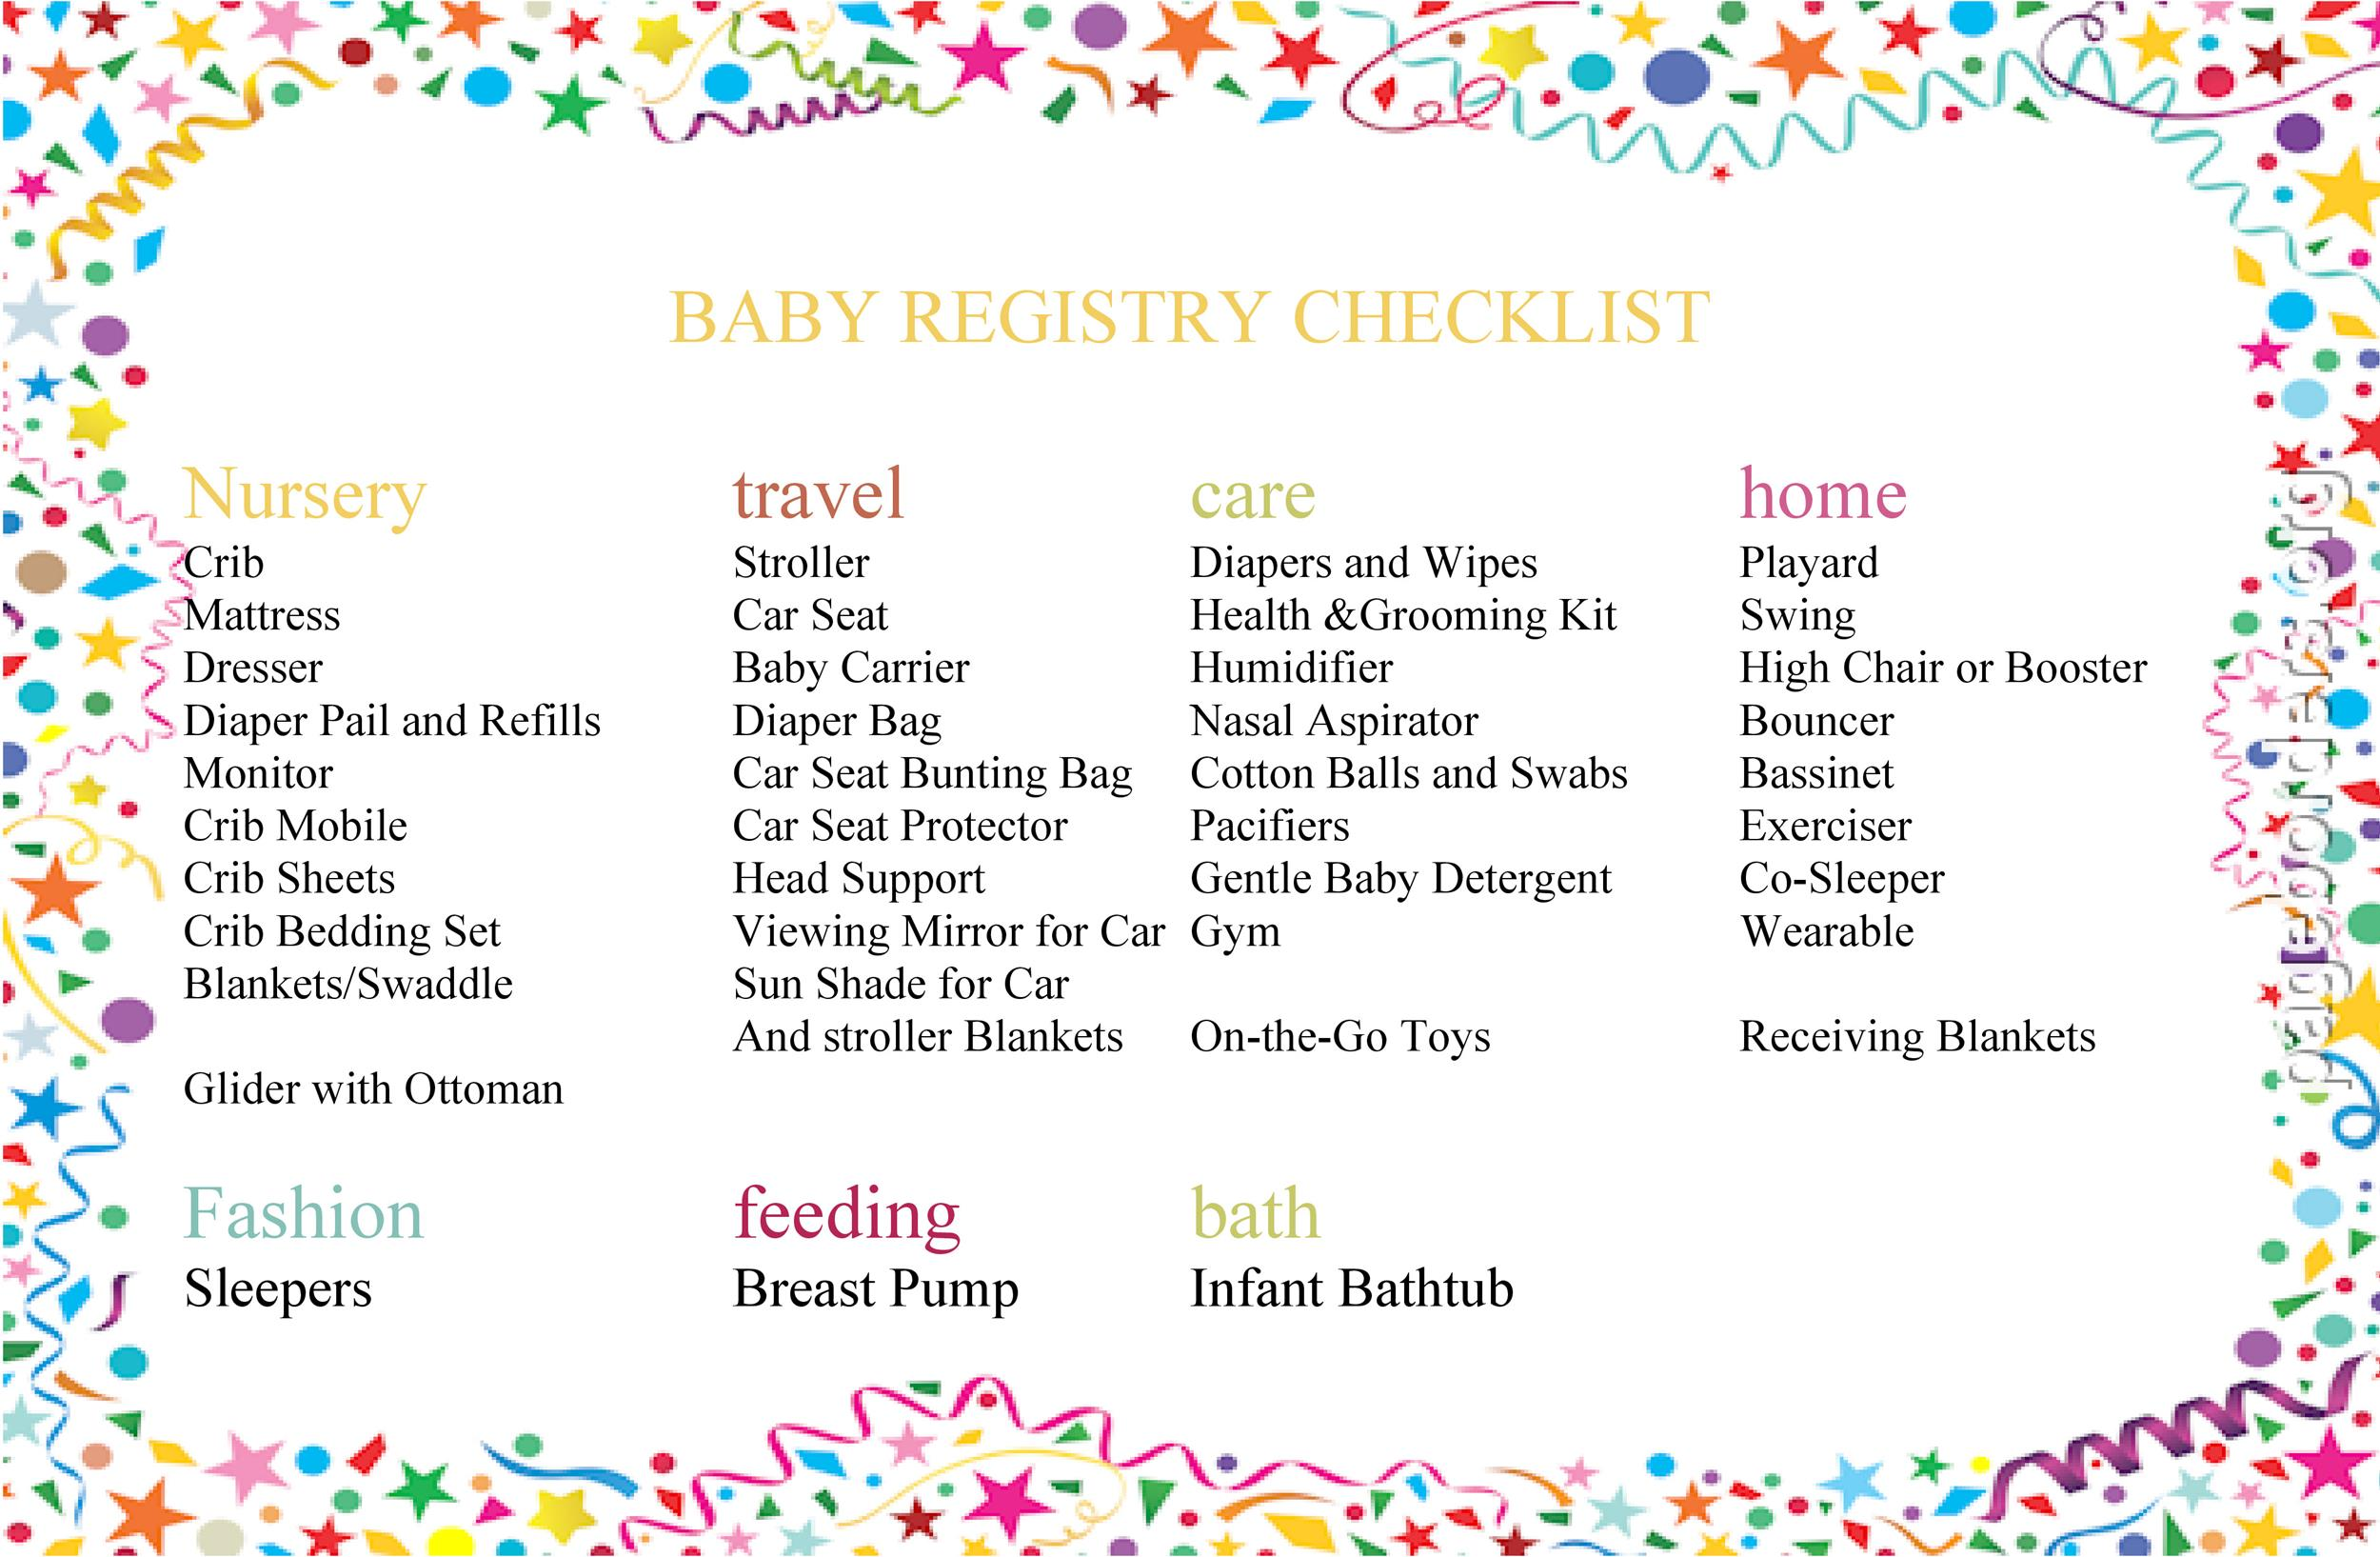 Newborn Checklist. Preparing For Baby--What Do I Need To Buy